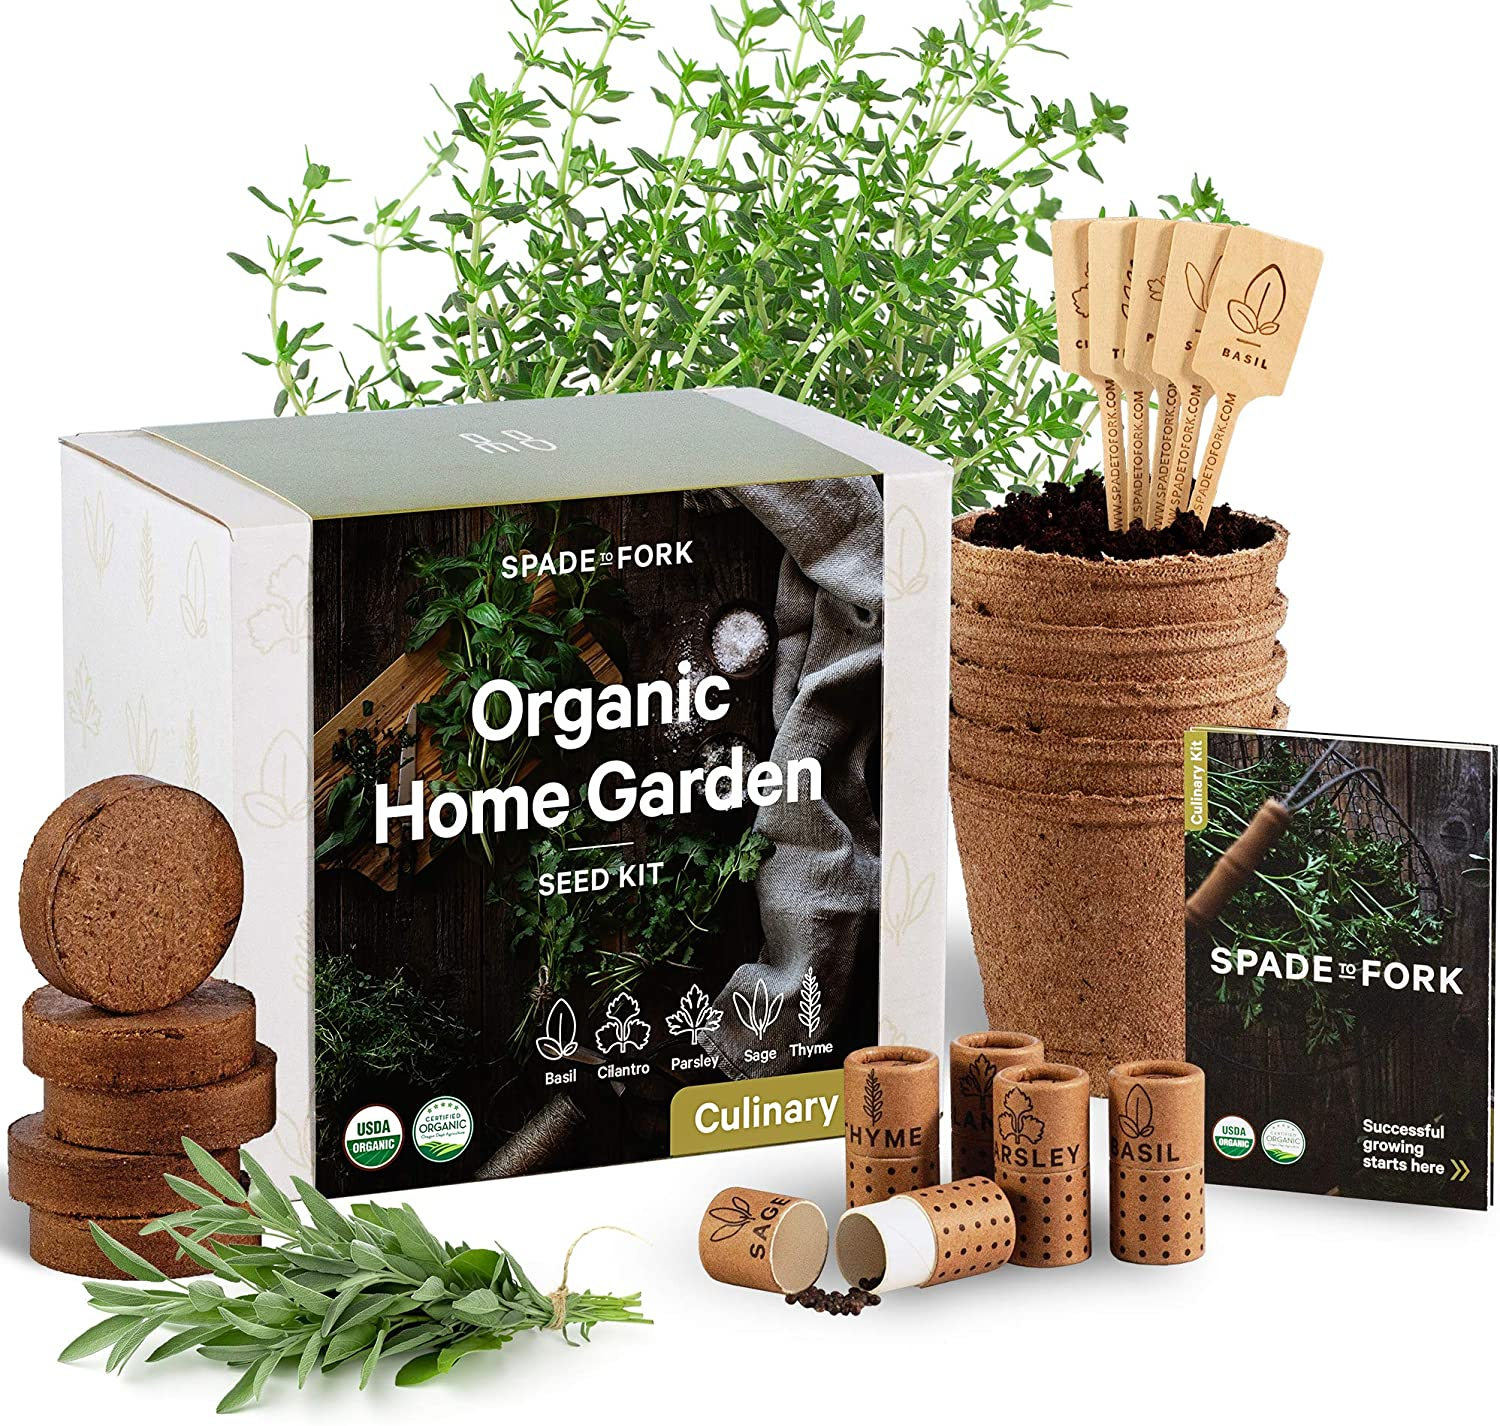 Organic gardening kits for herbs and vegetables